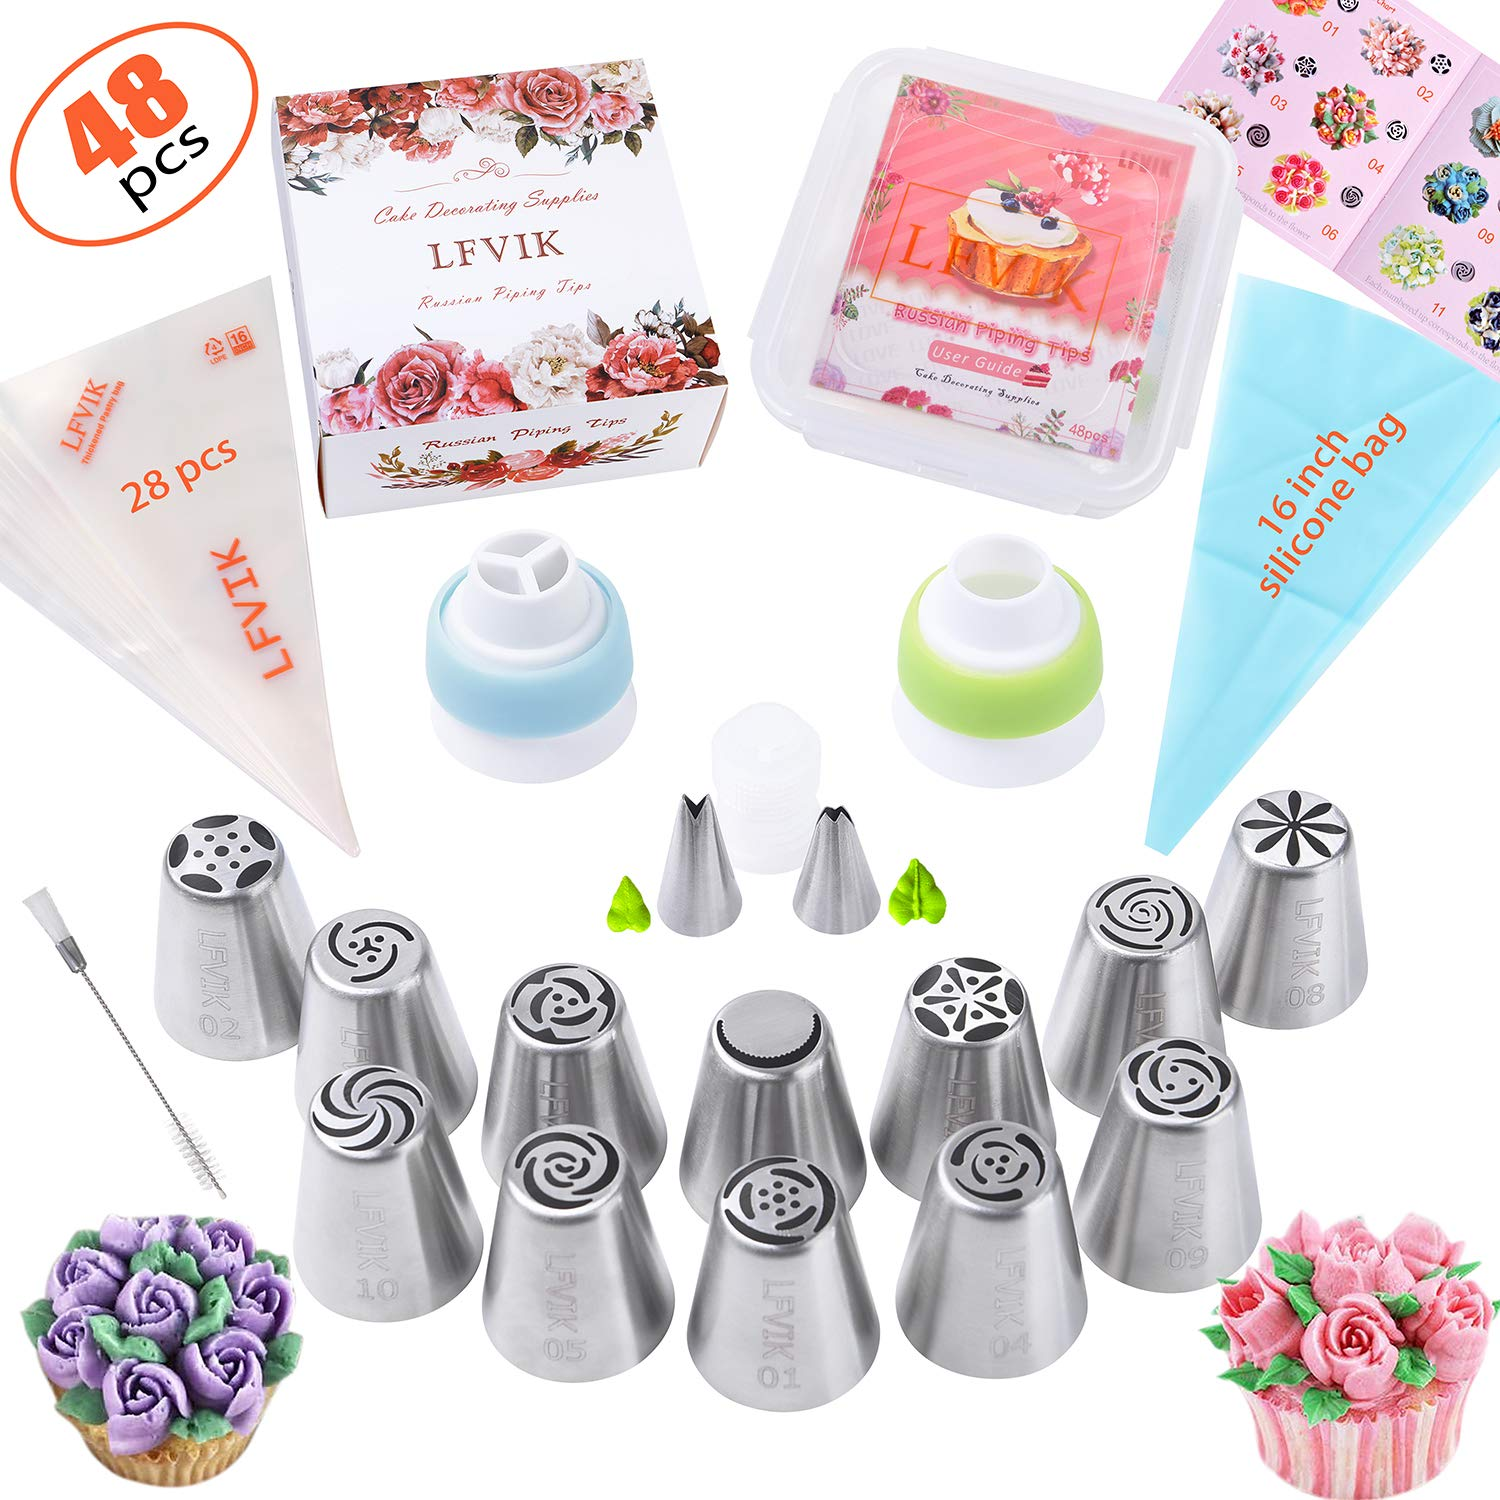 Russian Piping Tips Set 48 Pcs Cake Cupcake Decorating Supplies Kit Flower Frosting Tips 12 Icing Nozzles-2 Leaf Tips-3 Couplers-28 Pastry Baking Bags-User Guide by LFVIK